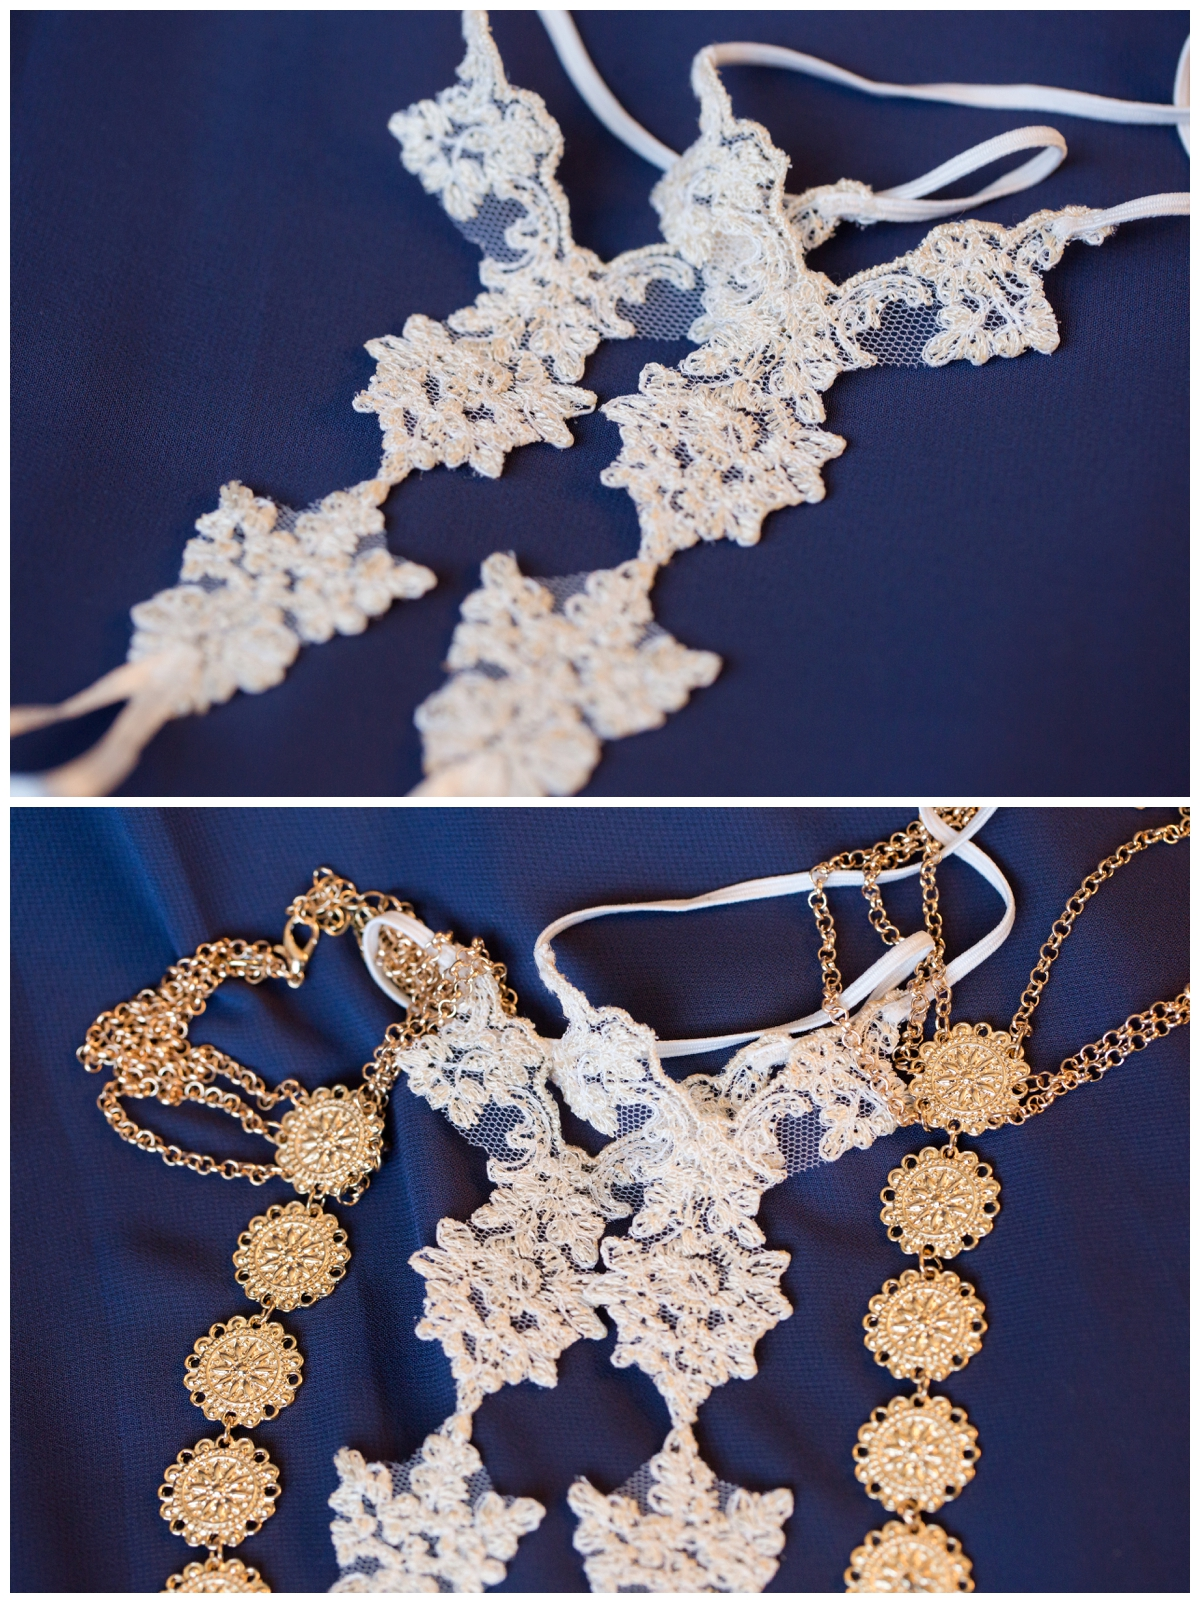 Bride and Bridesmaid foot jewelry in lieu of wearing shoes